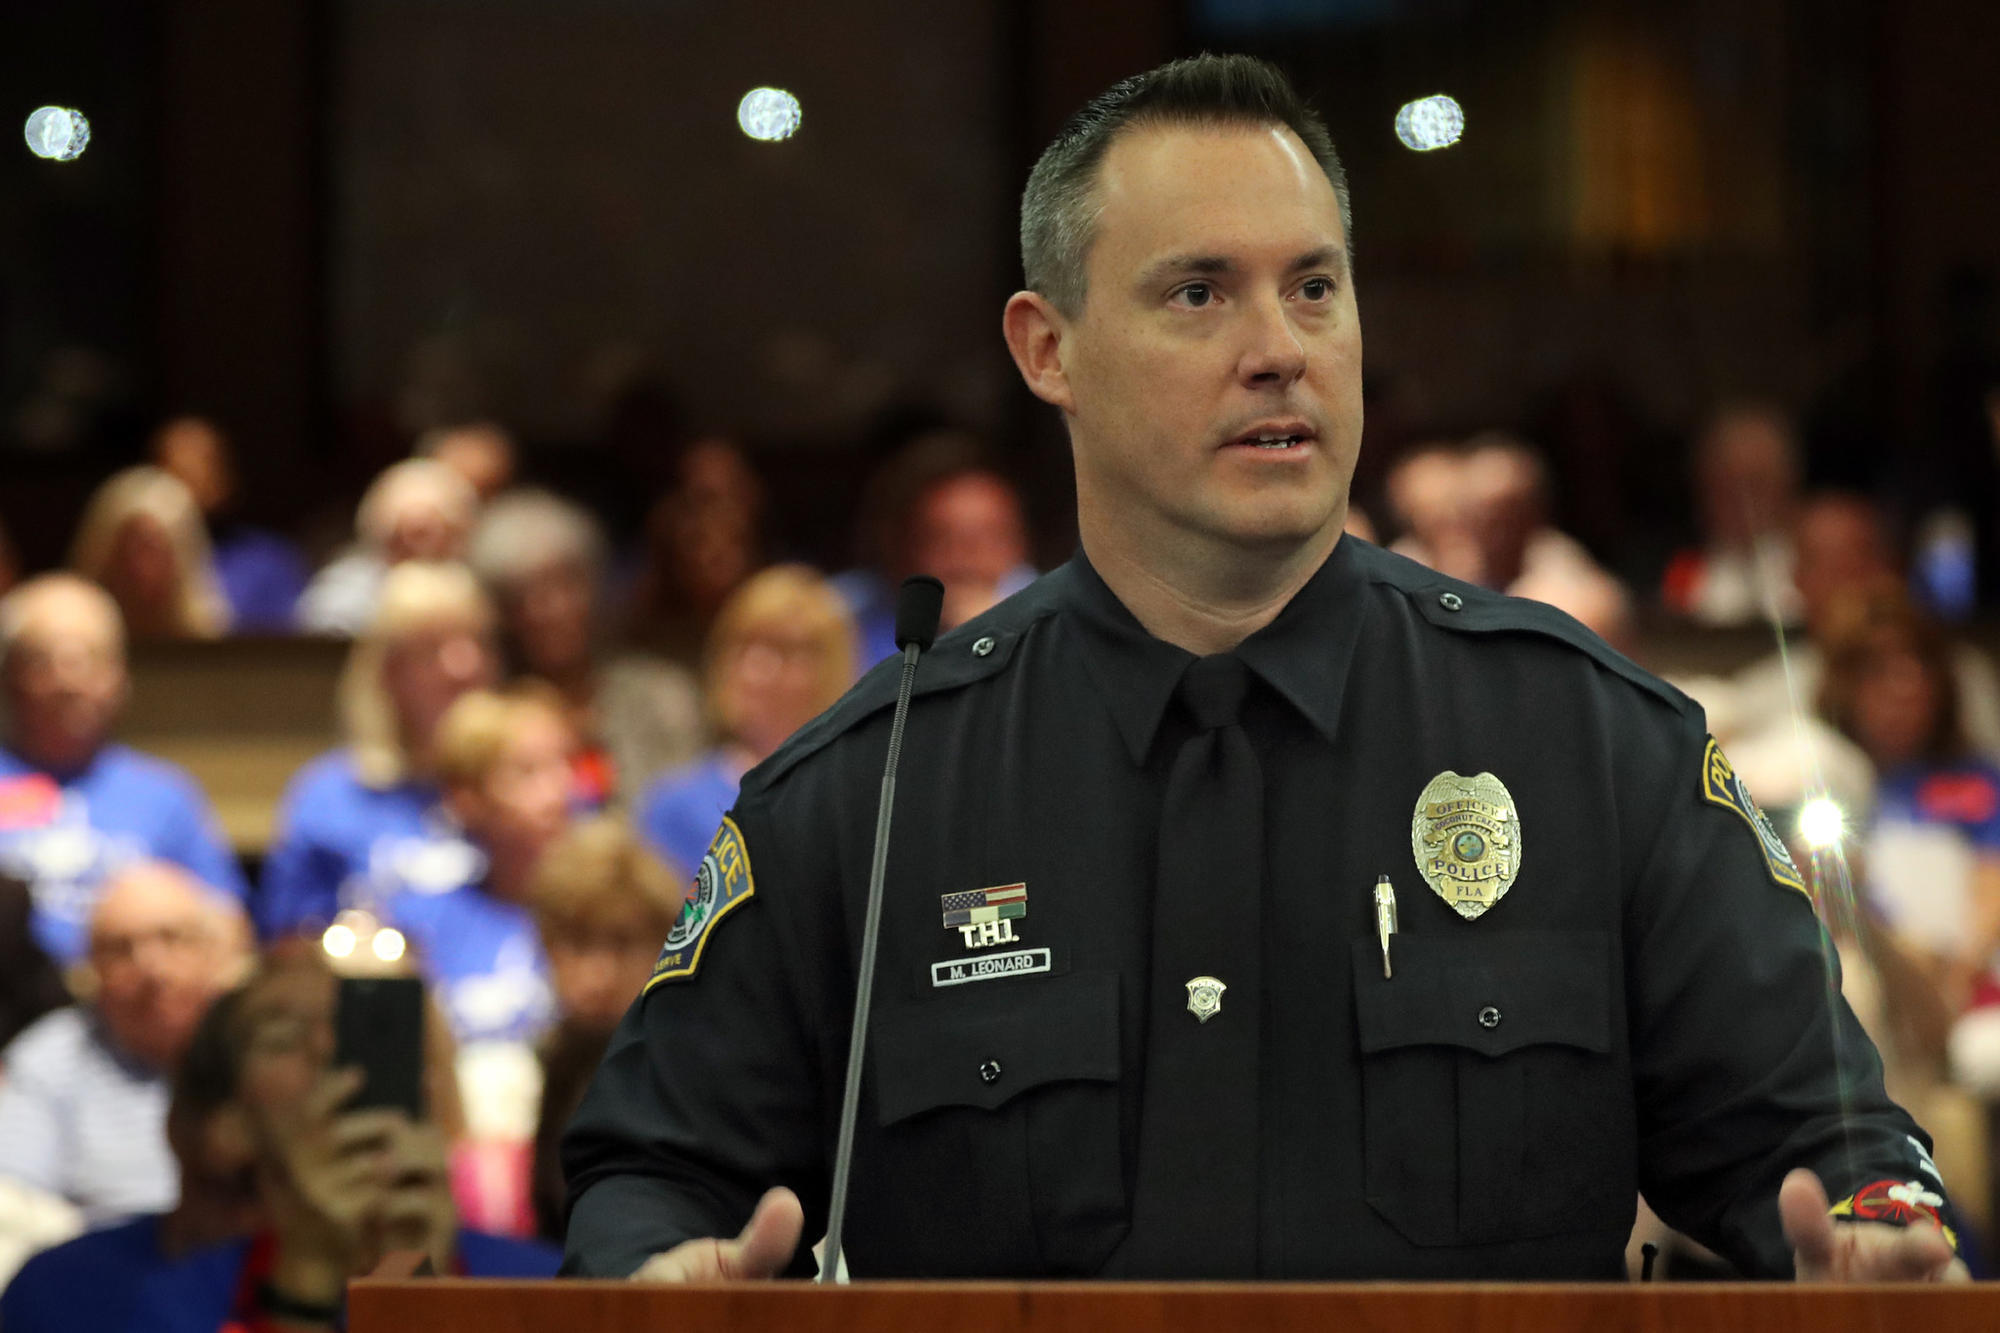 'It's not about me,' says officer who caught Stoneman ...